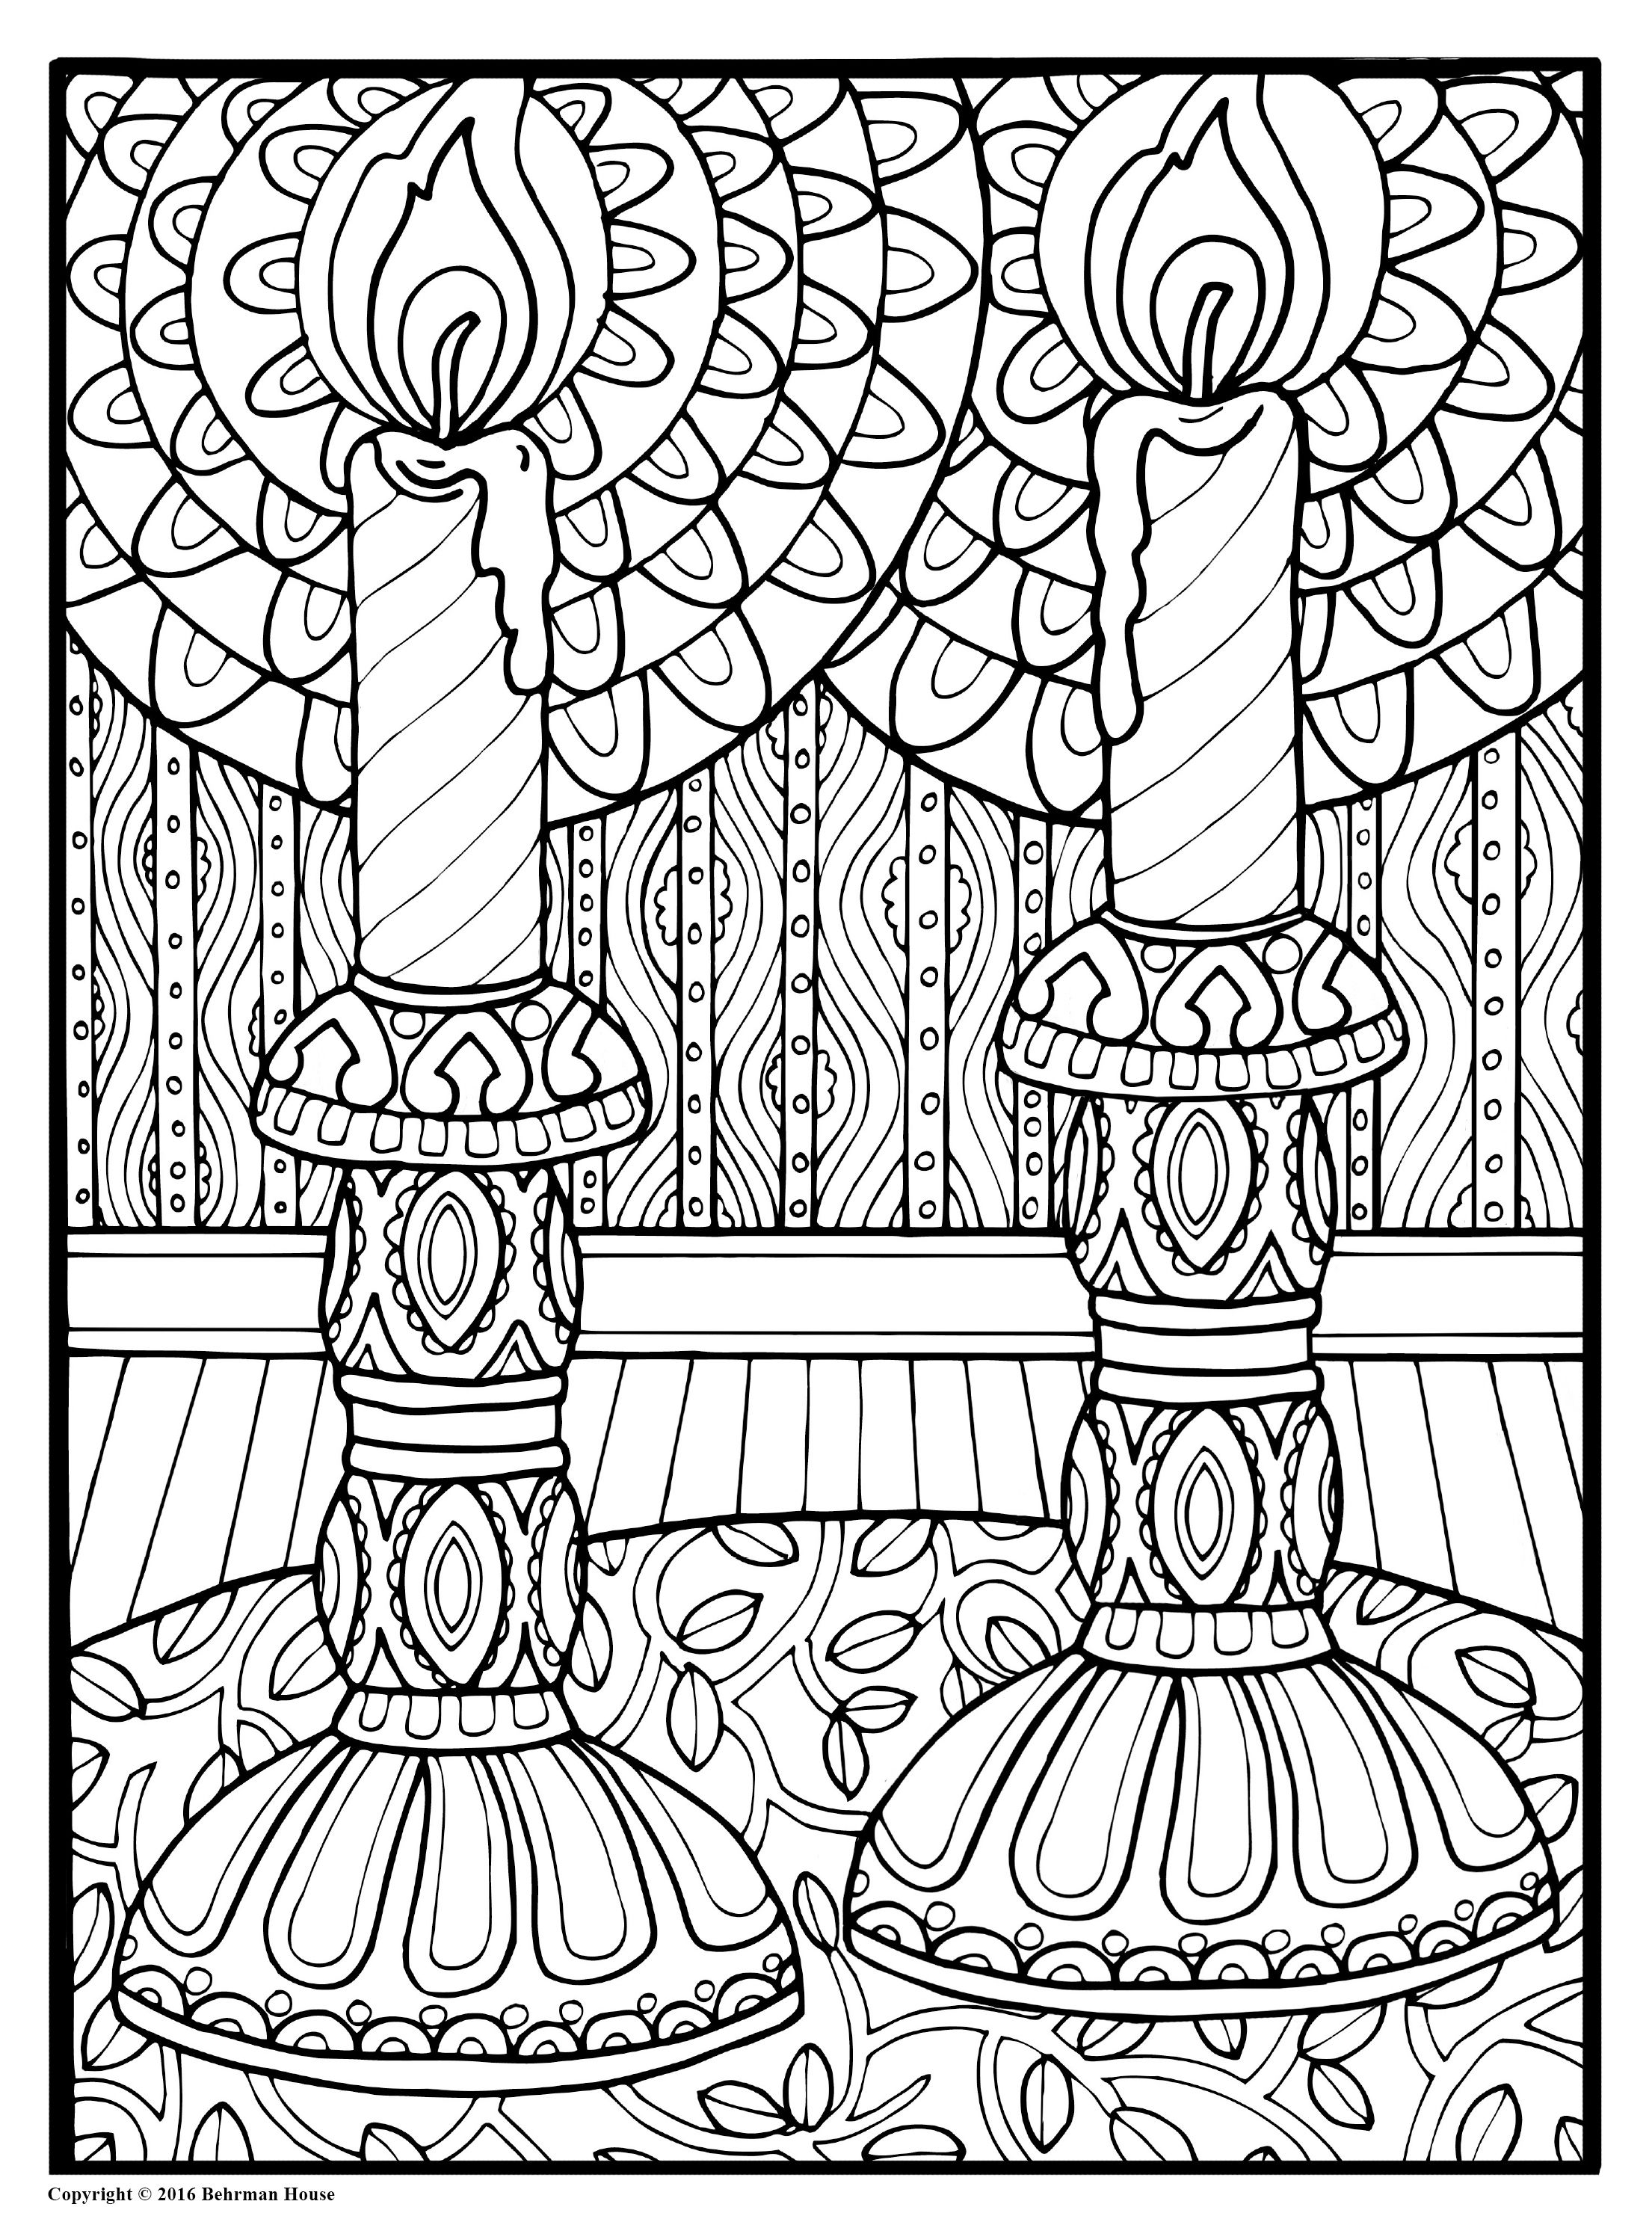 torah tots coloring pages Download-Beautiful Candles Shalom Coloring Book The New Alternative to Meditation 1-a